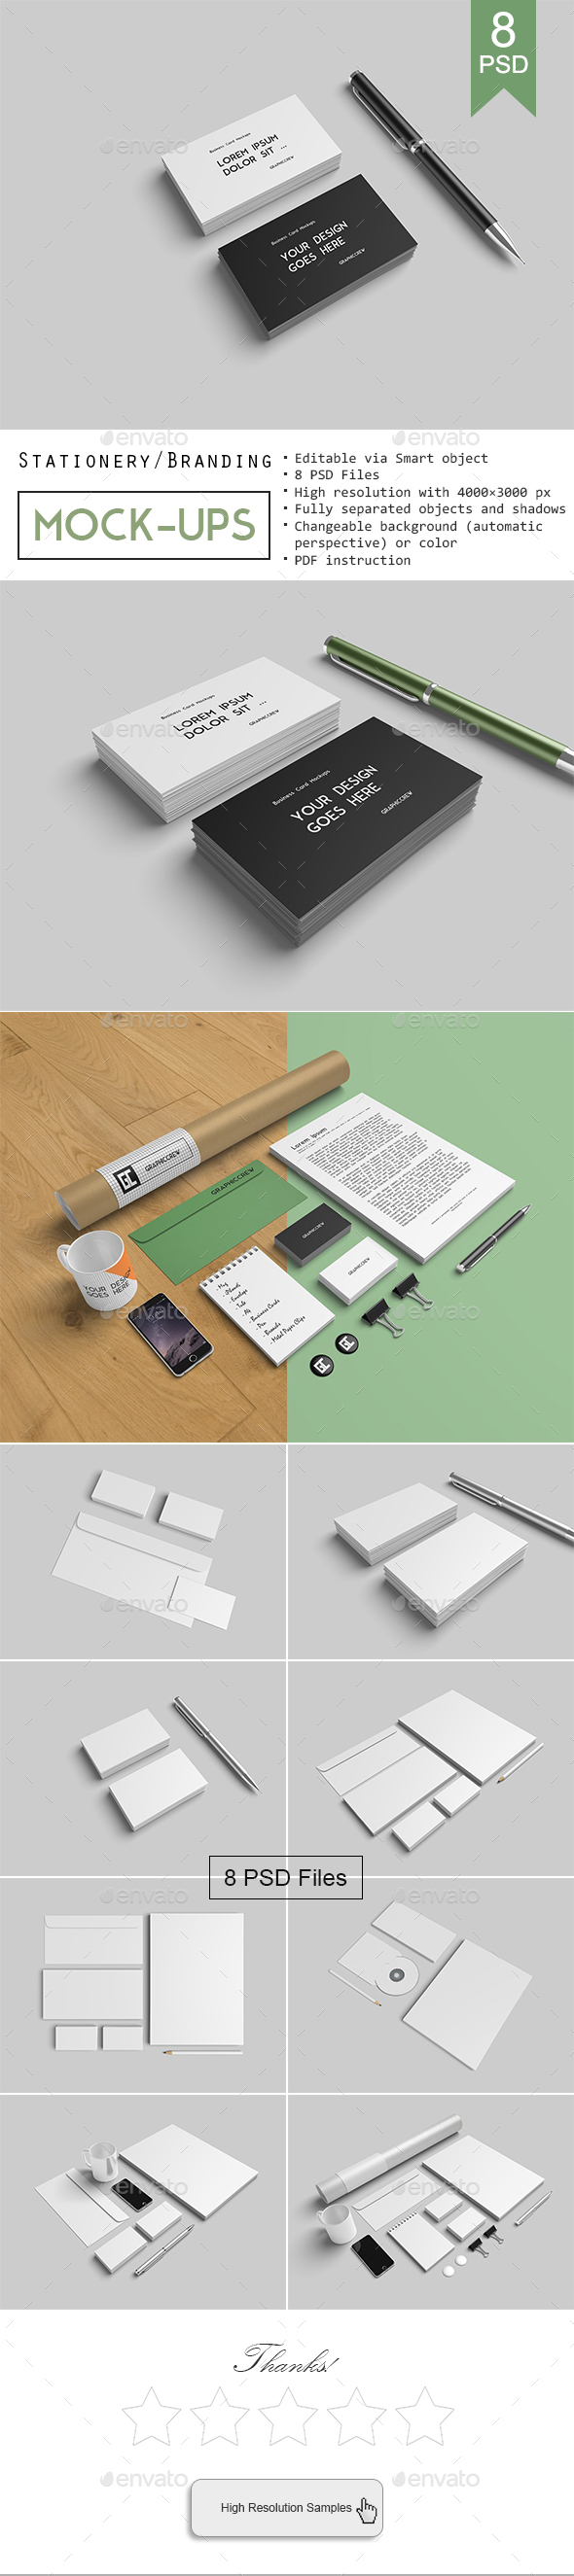 5 Realistic Mockup Billboard the Streets (Stationery)